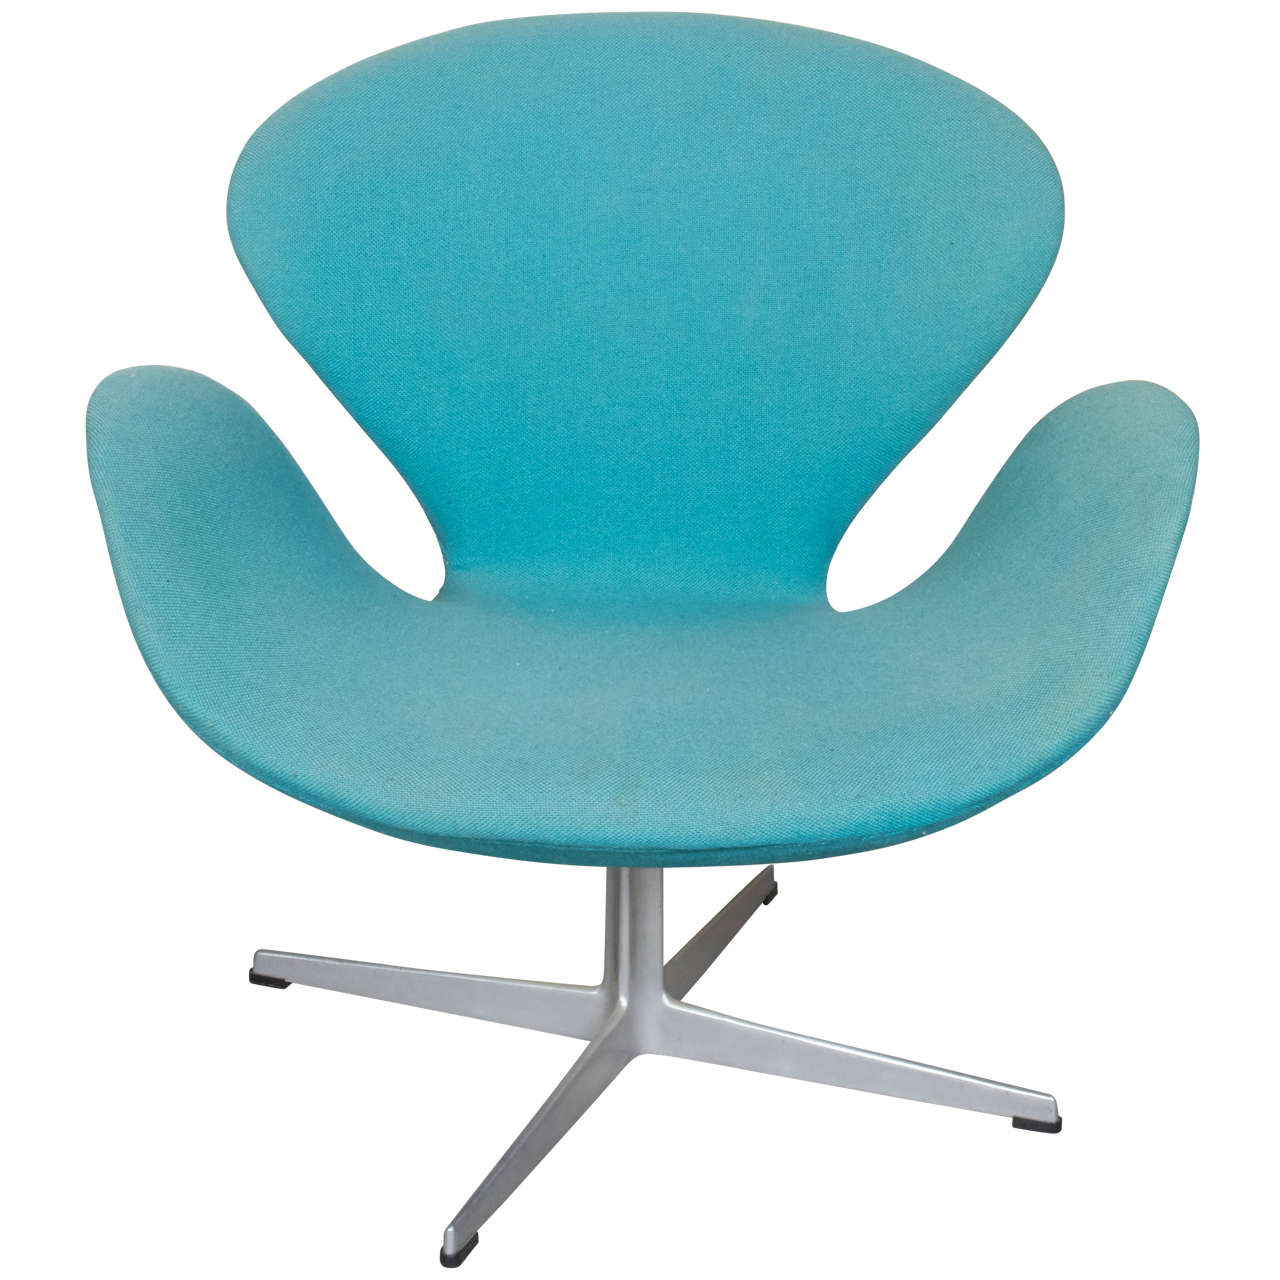 Swan chair by arne jacobsen all original for sale at 1stdibs for Swan chairs for sale